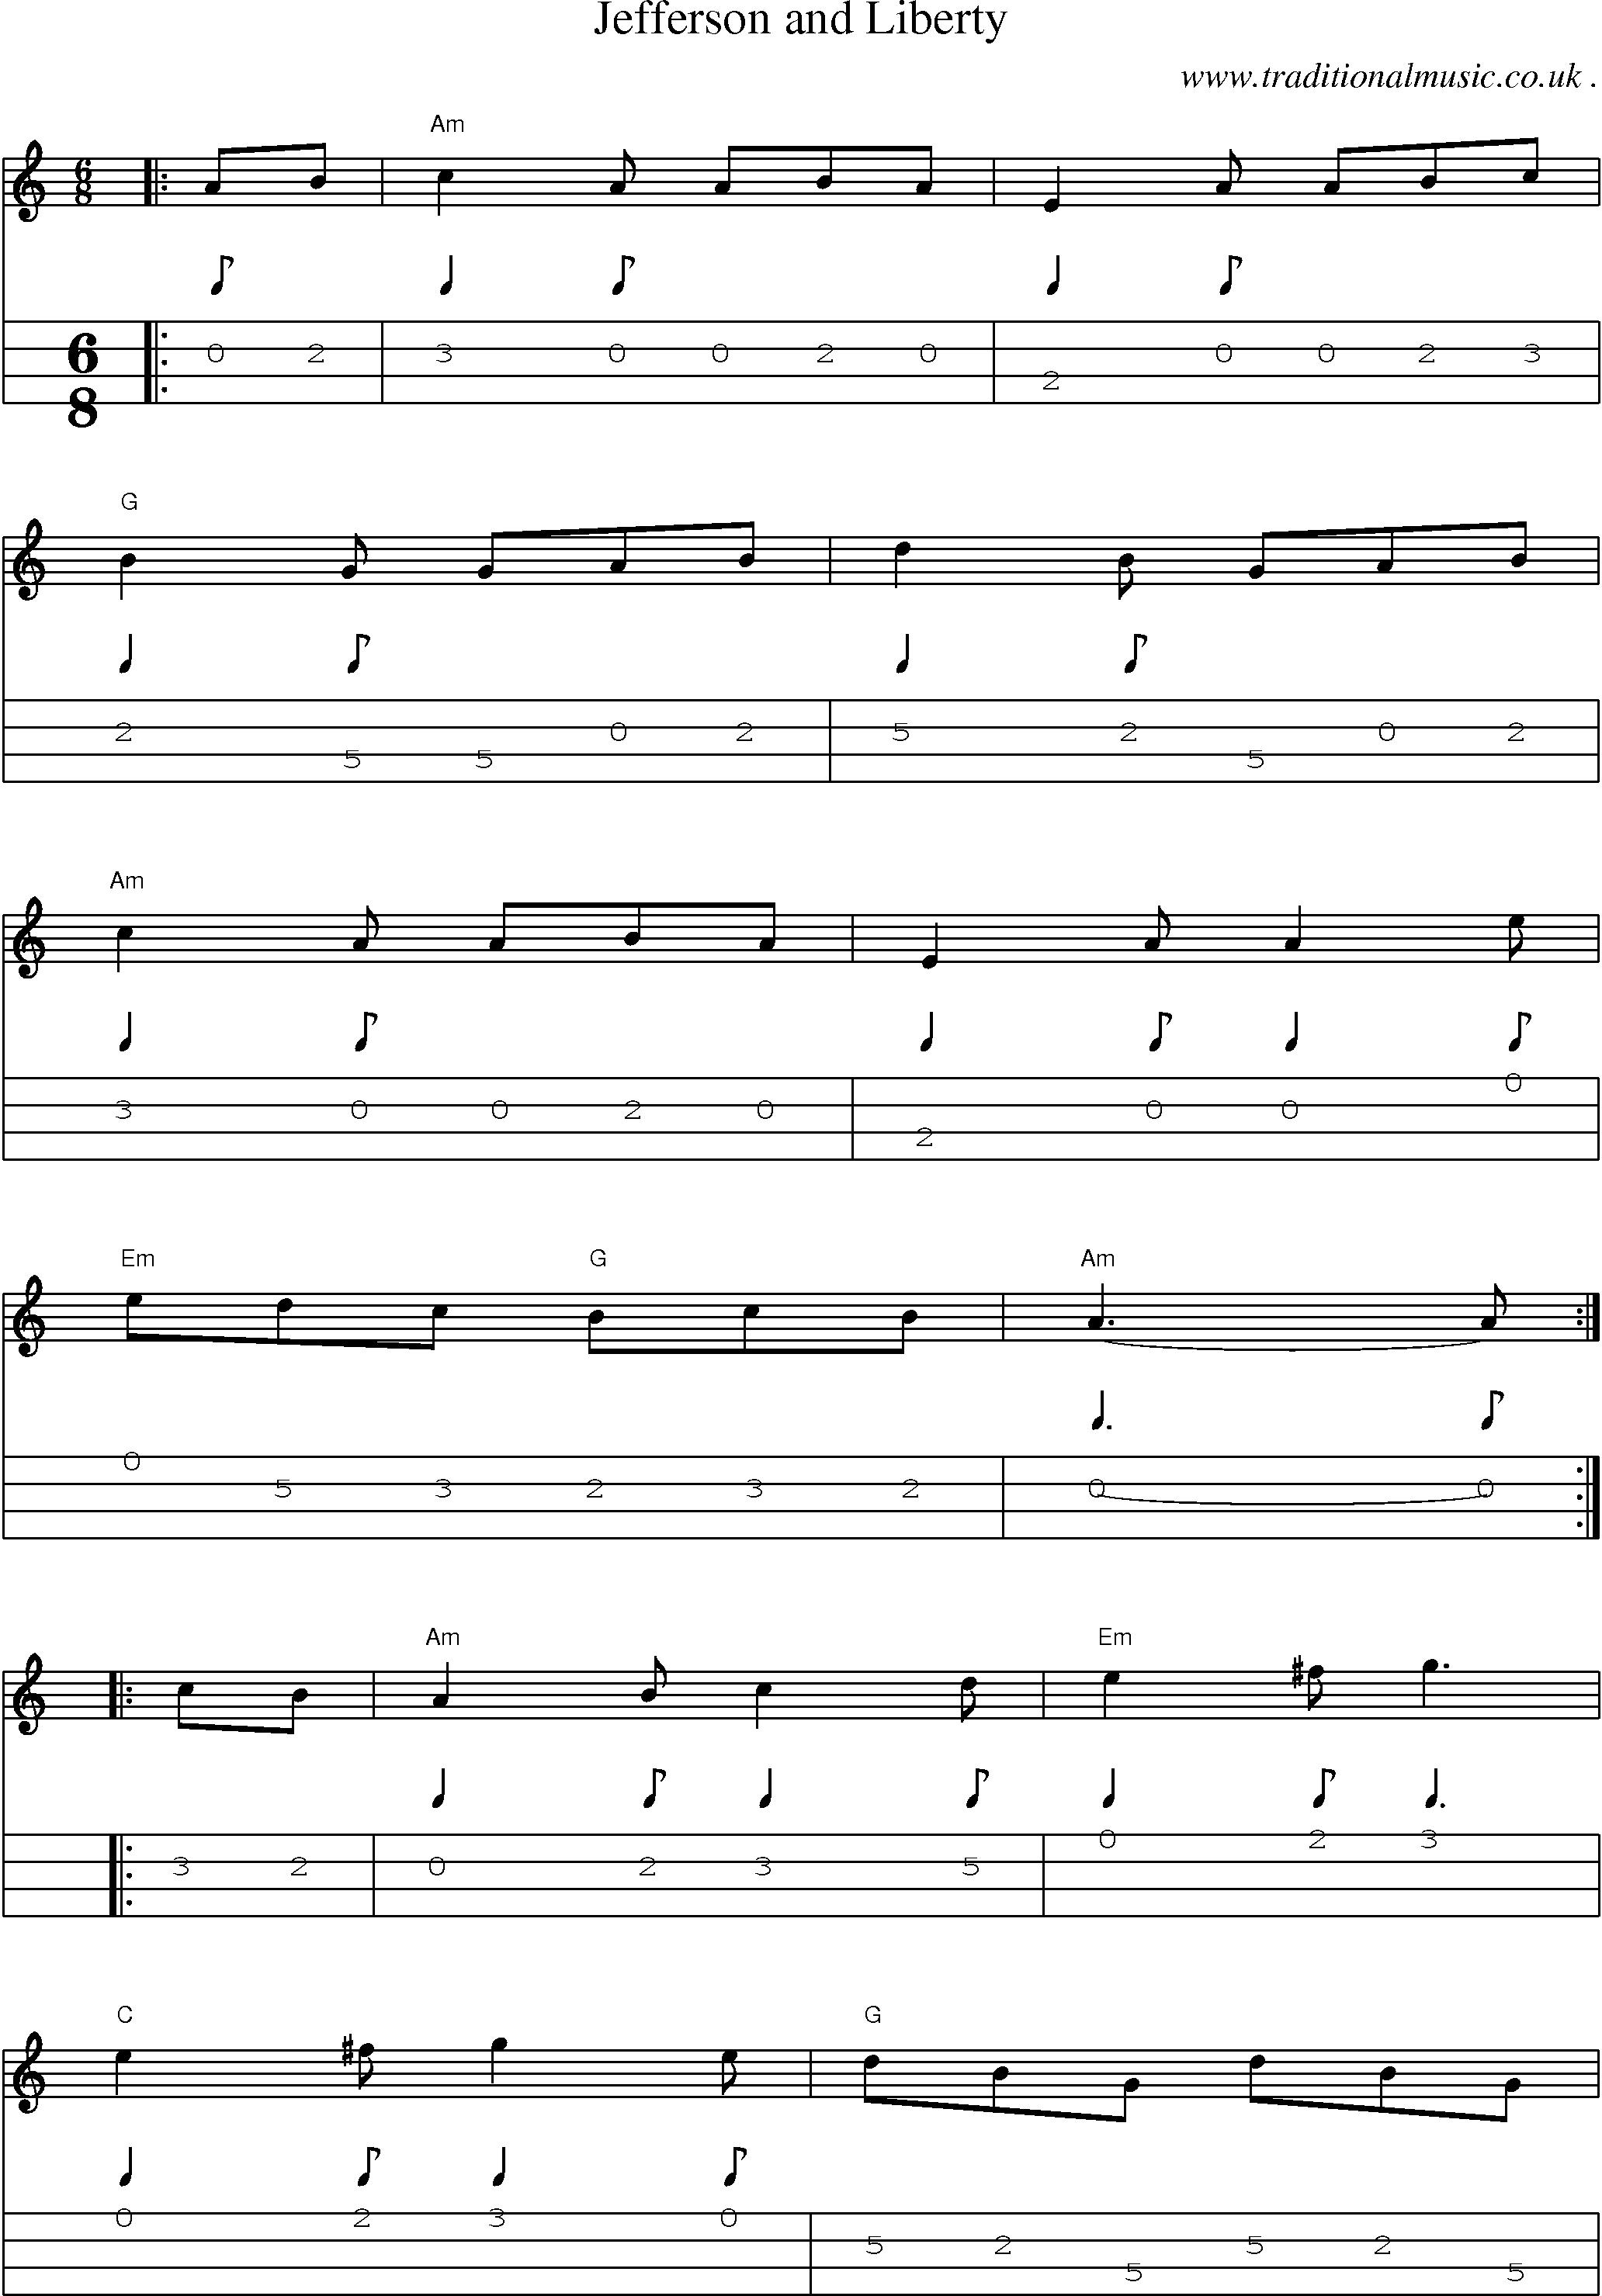 Music Score and Mandolin Tabs for Jefferson And Liberty